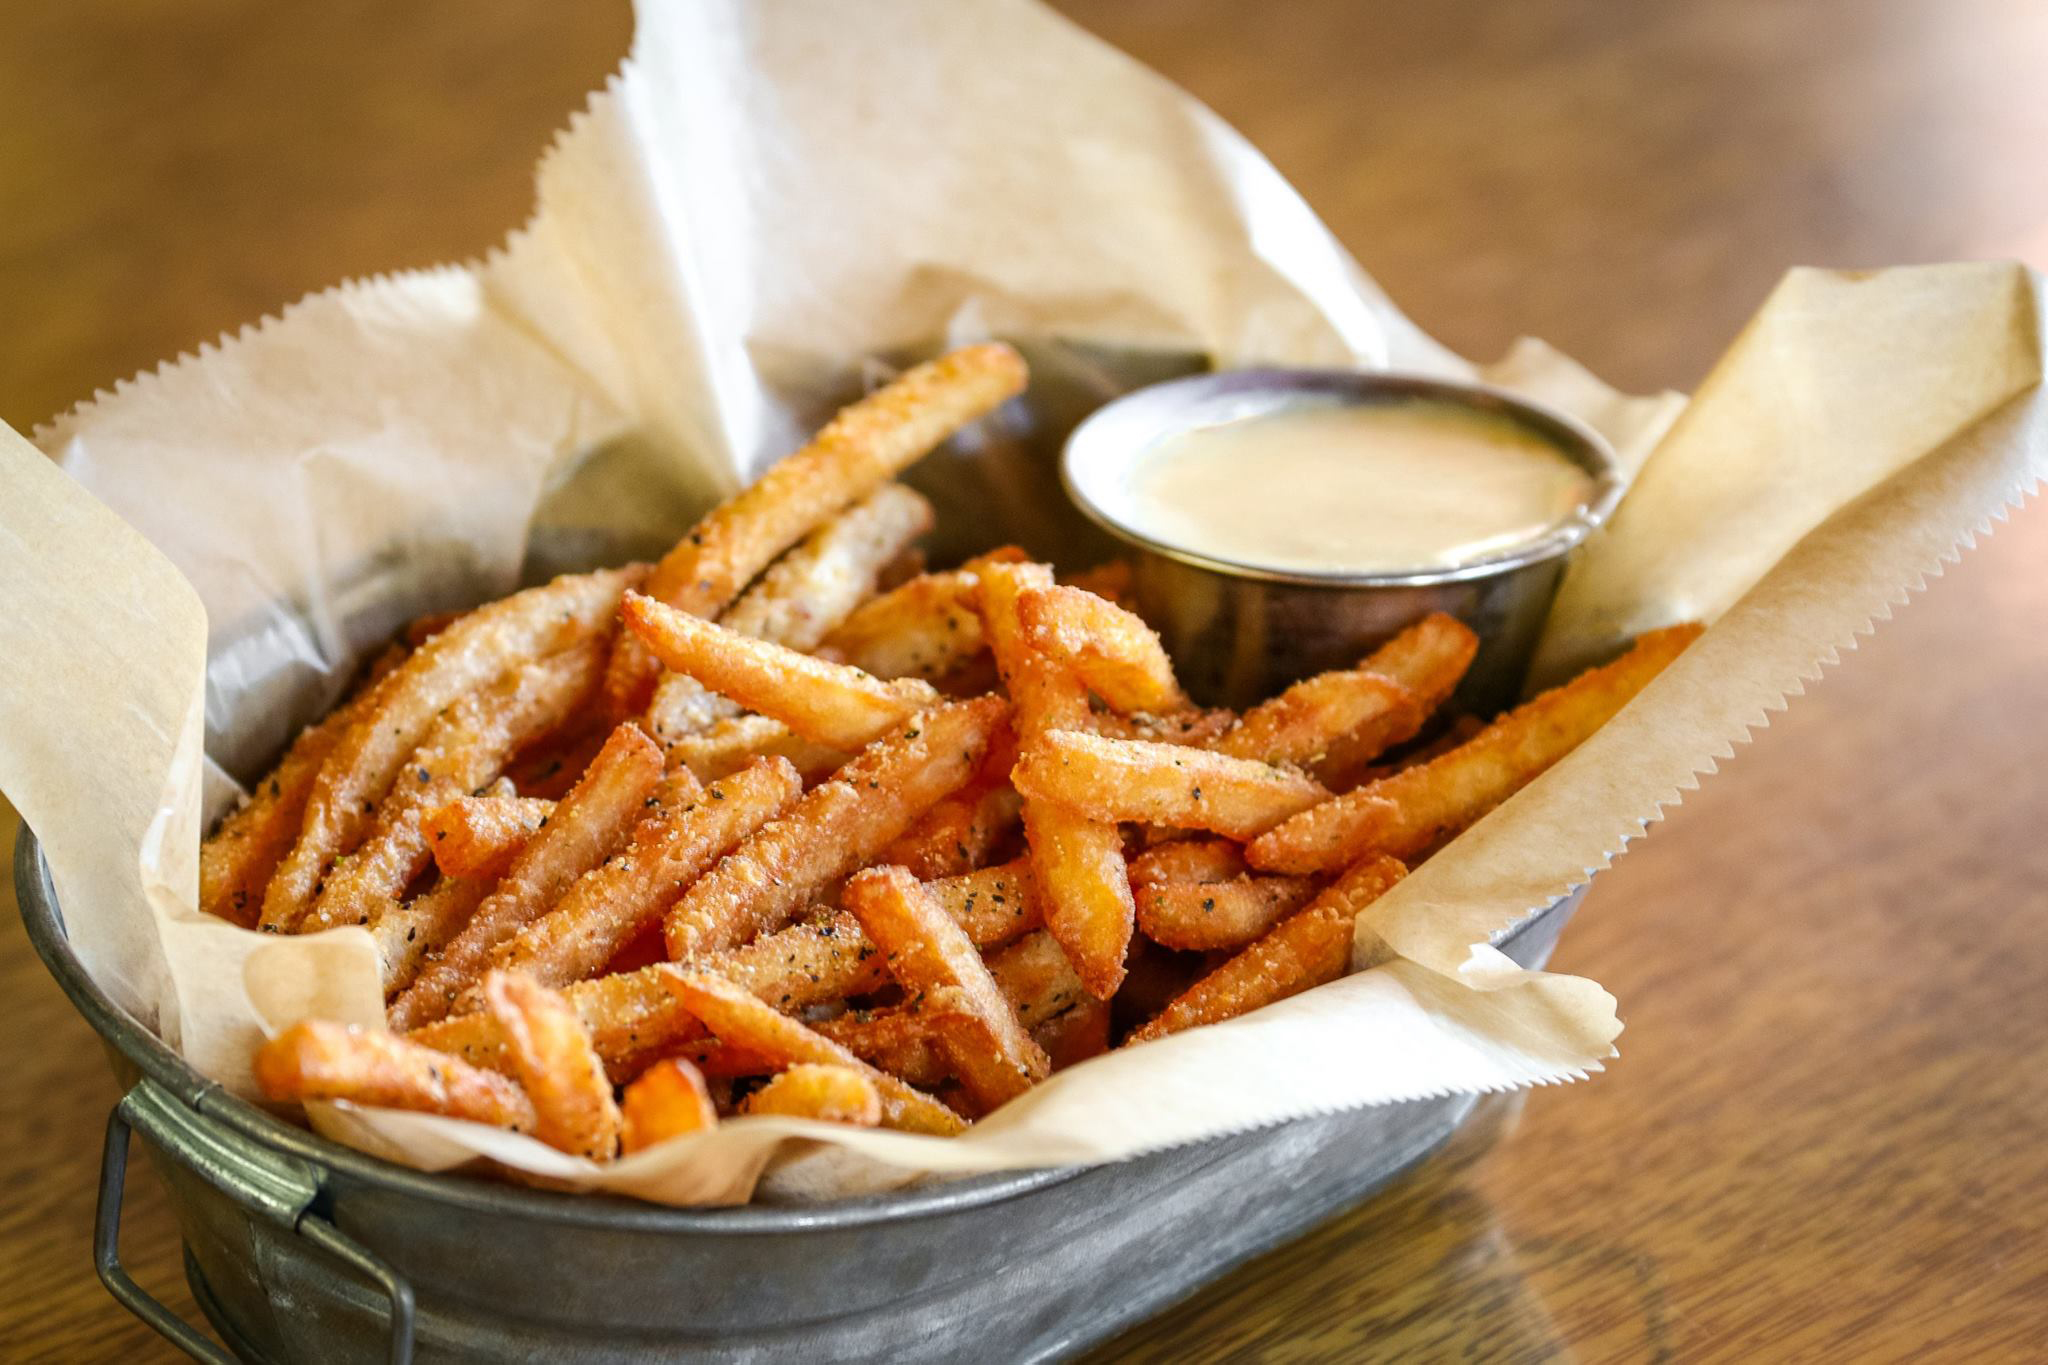 HopCat crack fries